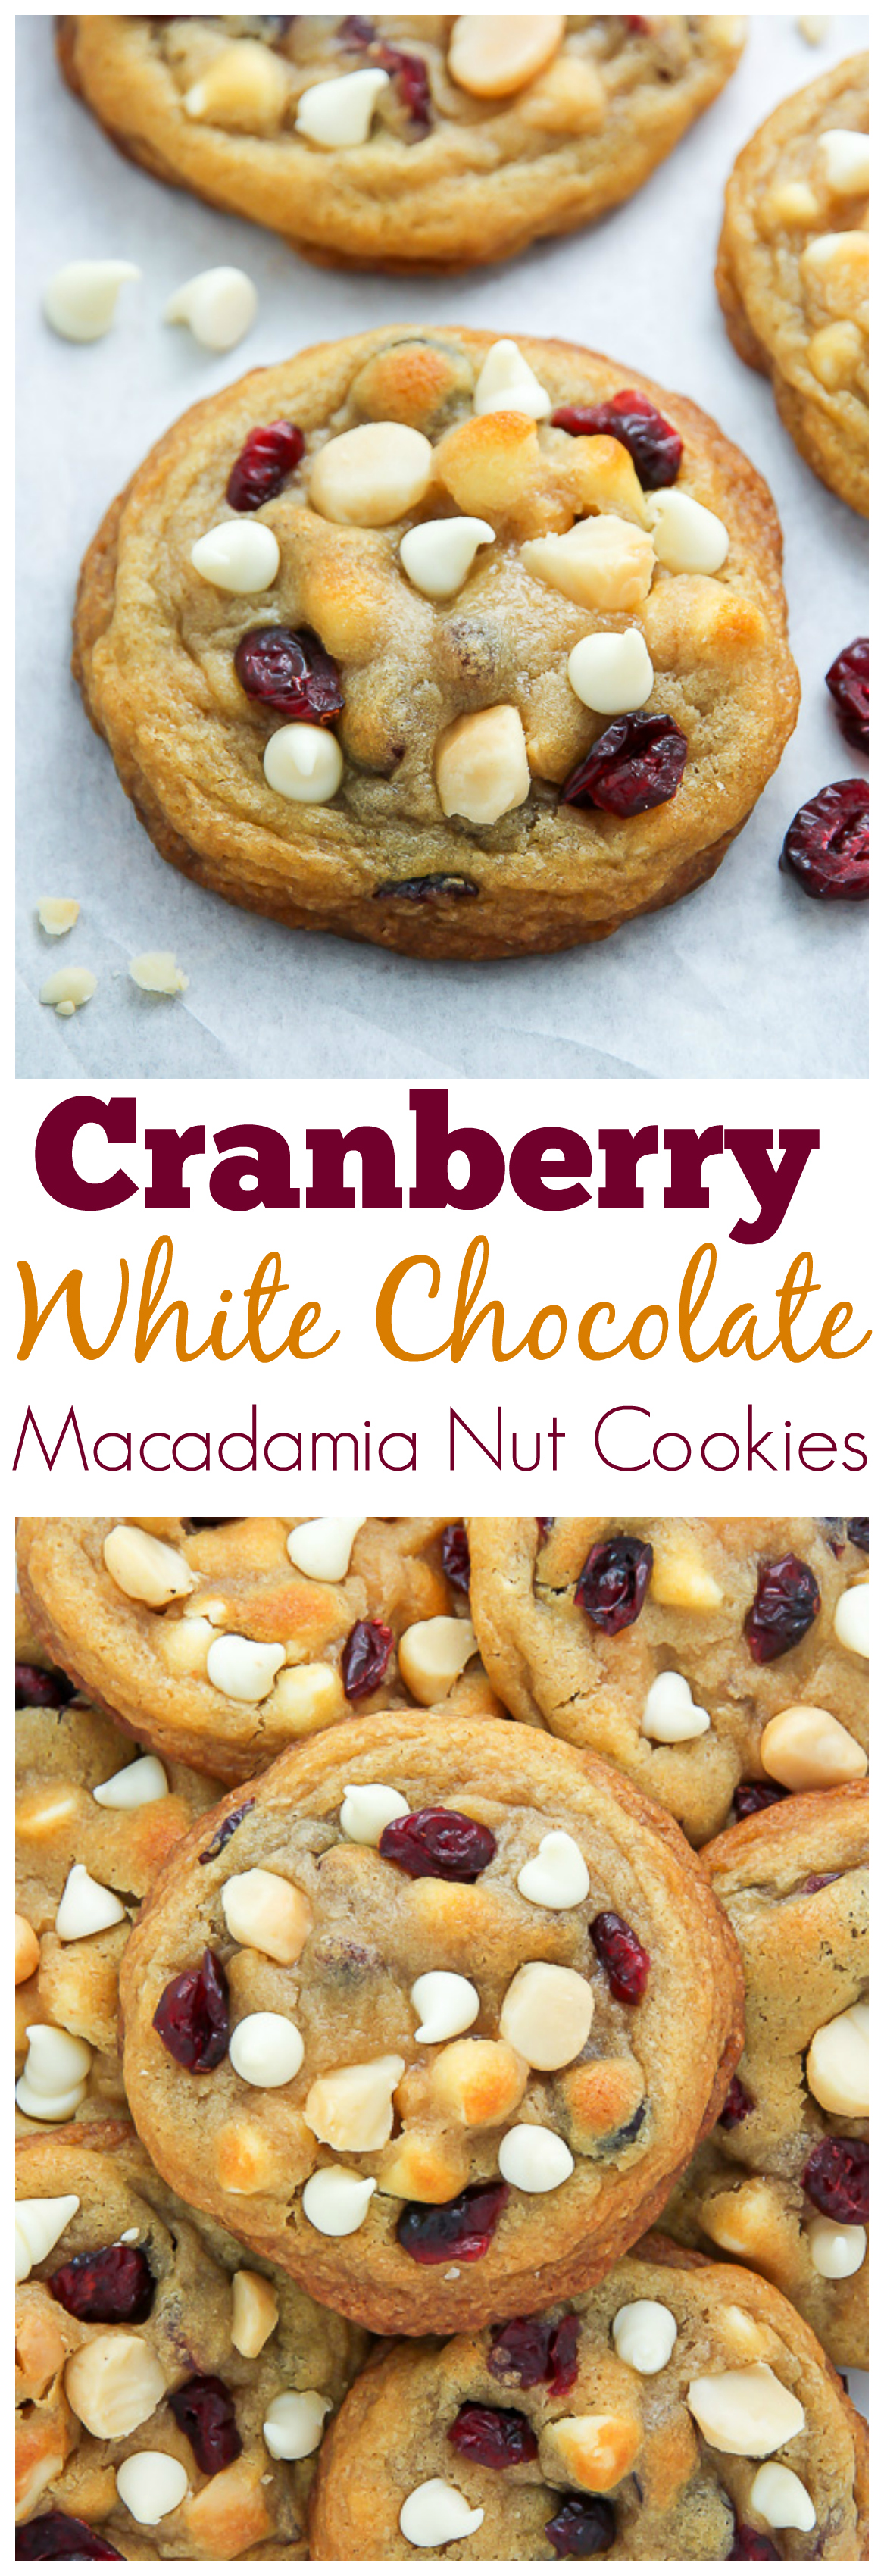 Cranberry White Chocolate Macadamia Nut Cookies - Baker by Nature